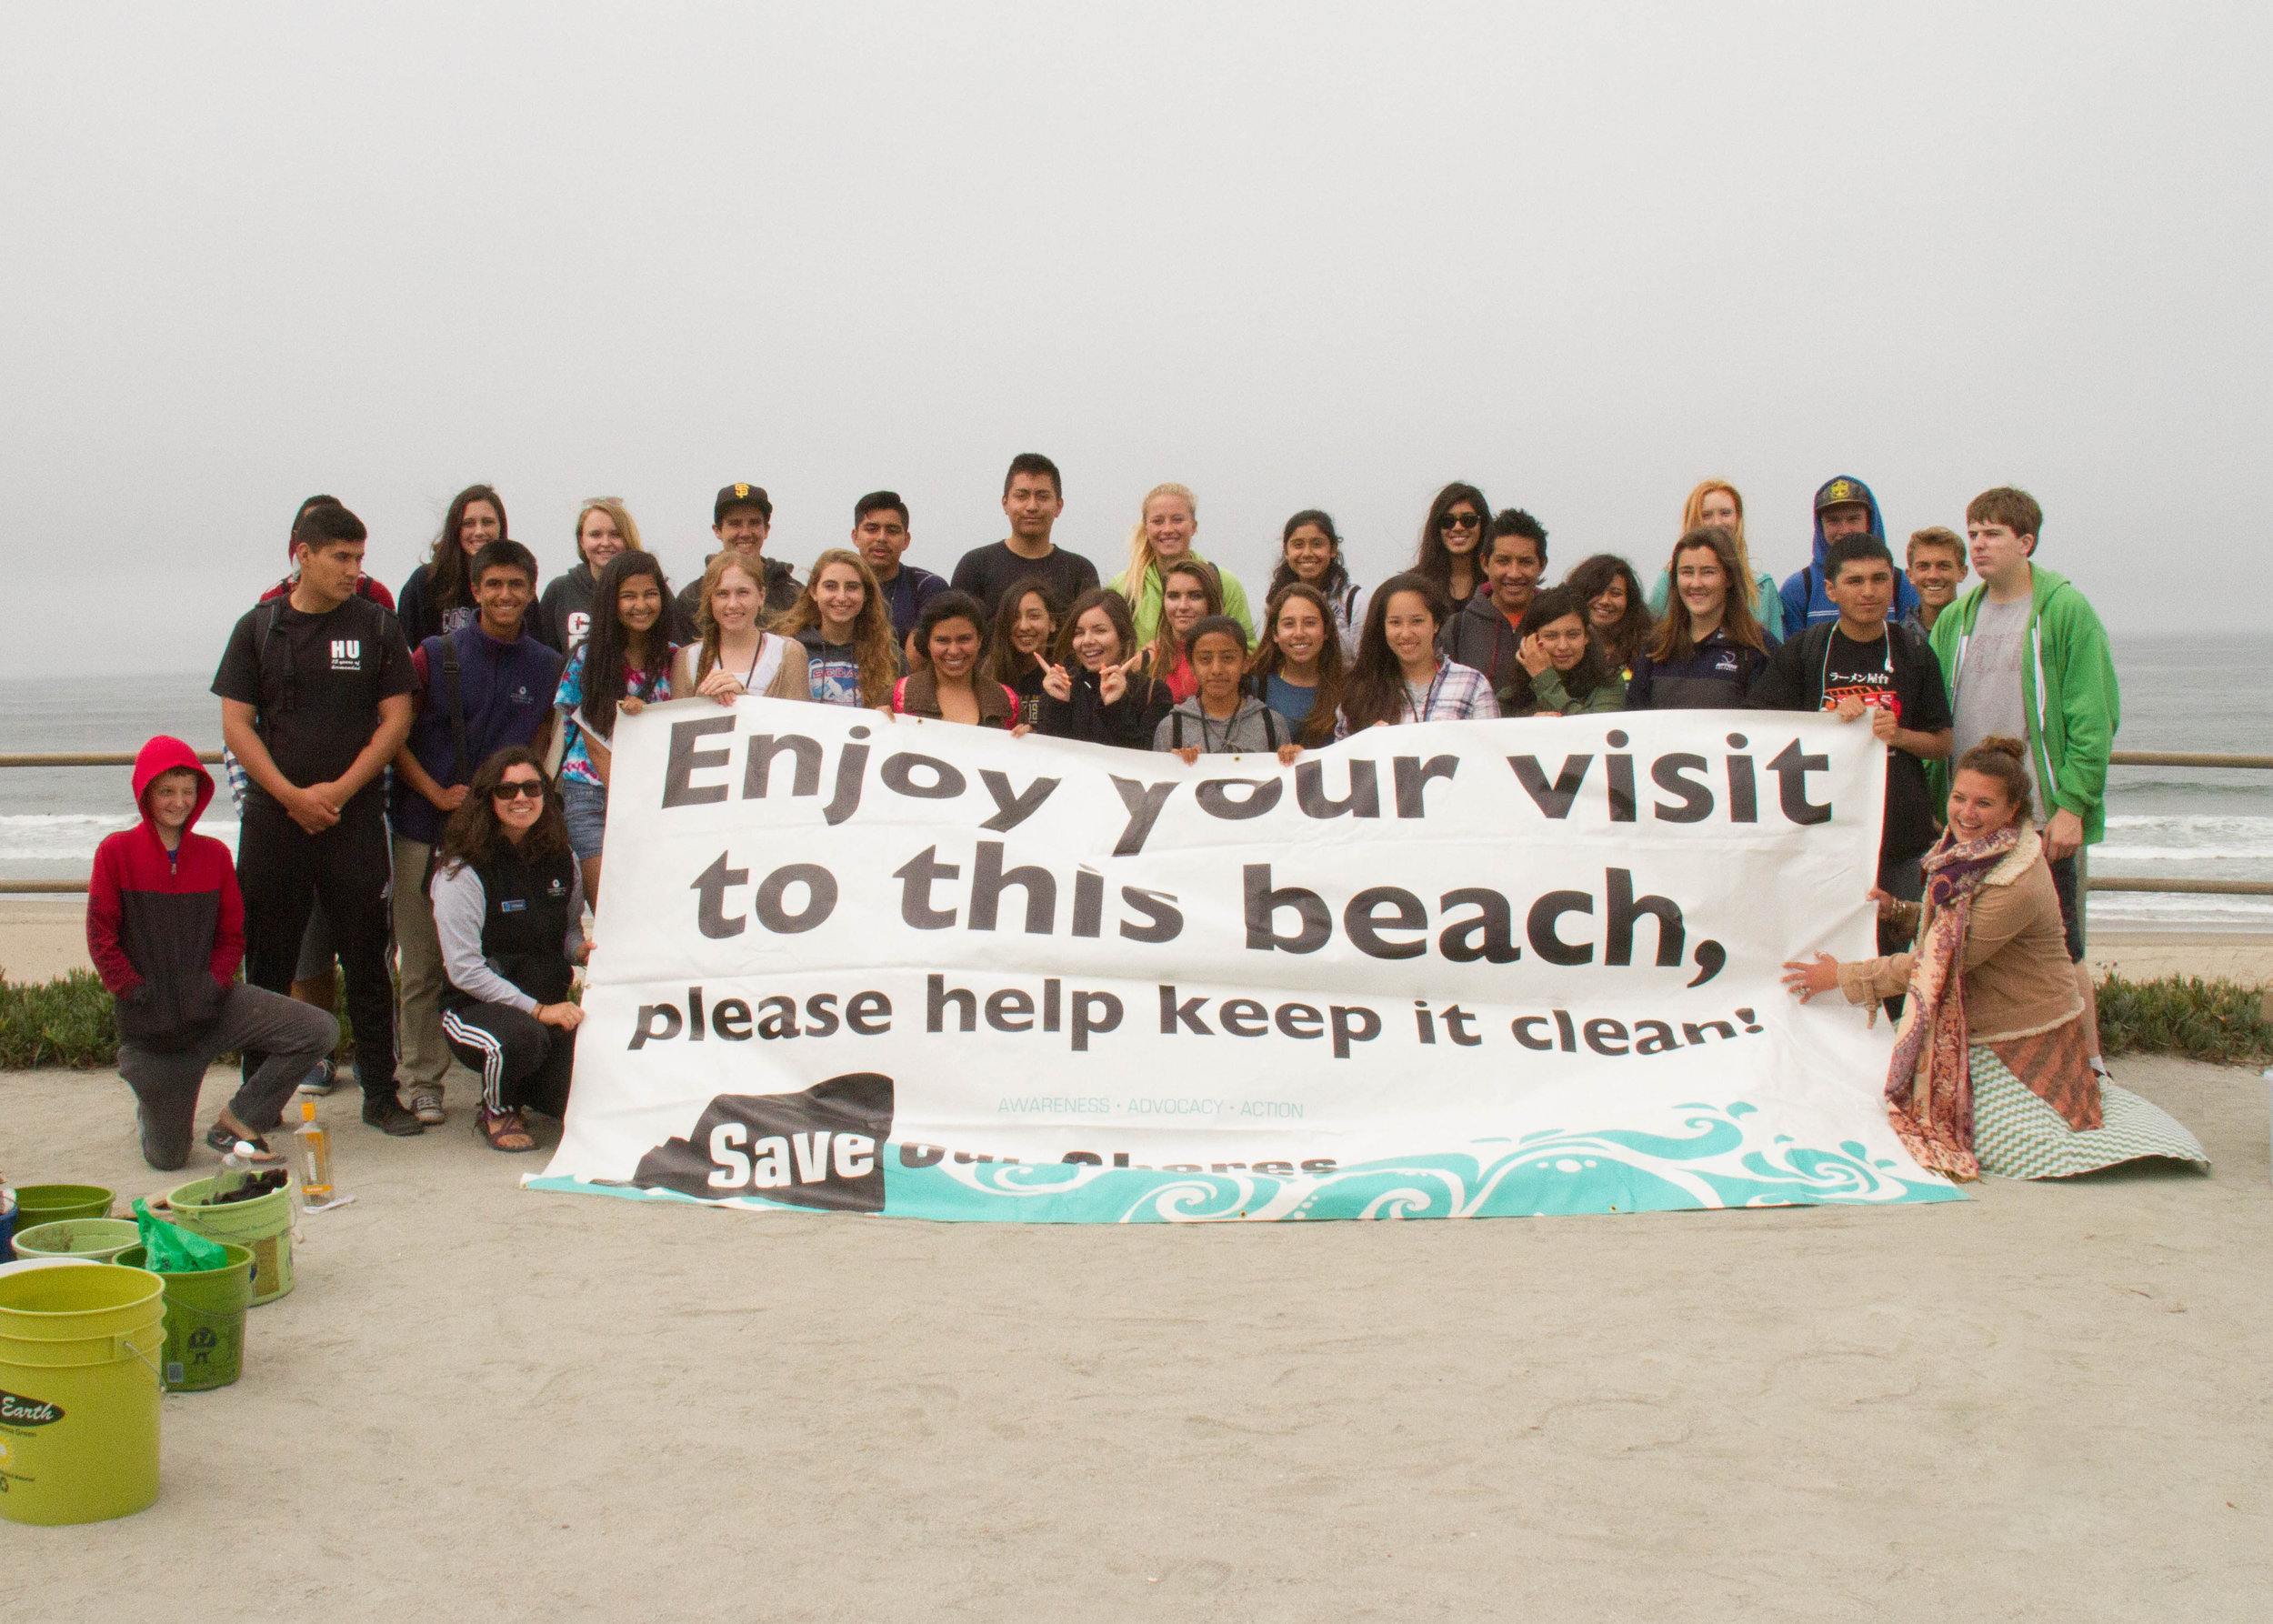 Students participate in a Save Our Shores beach clean-up. By collaborating with WOLF School, Save Our Shores is able to reach a whole new sector of central California's youth, and WOLF School is able to integrate a deeply impactful lesson into their outdoor science school program.